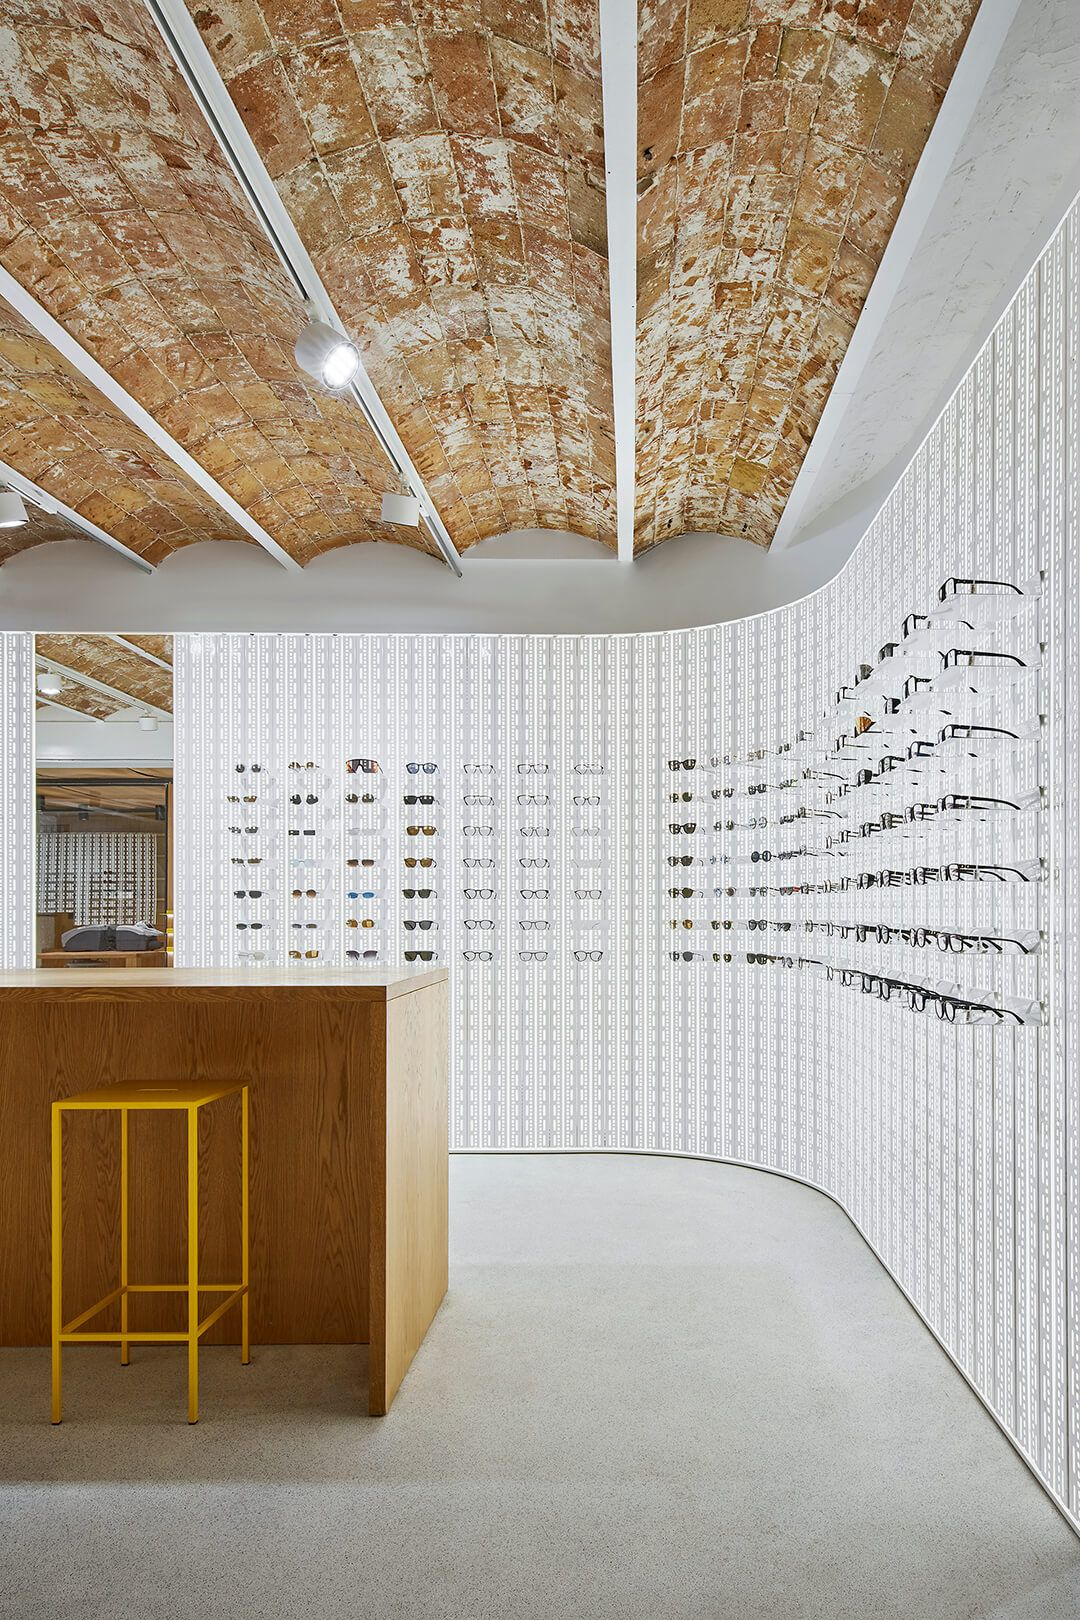 A German eyewear shop does localwithabrandtwist in Barcelona is part of Eyewear store design, Eyewear shop, Mykita, Jewelry store design, Eyewear store, Retail design - The new Mykita store in Barcelona shows that a mix of local identity and brand aesthetic can also convey a grounded retail narrative